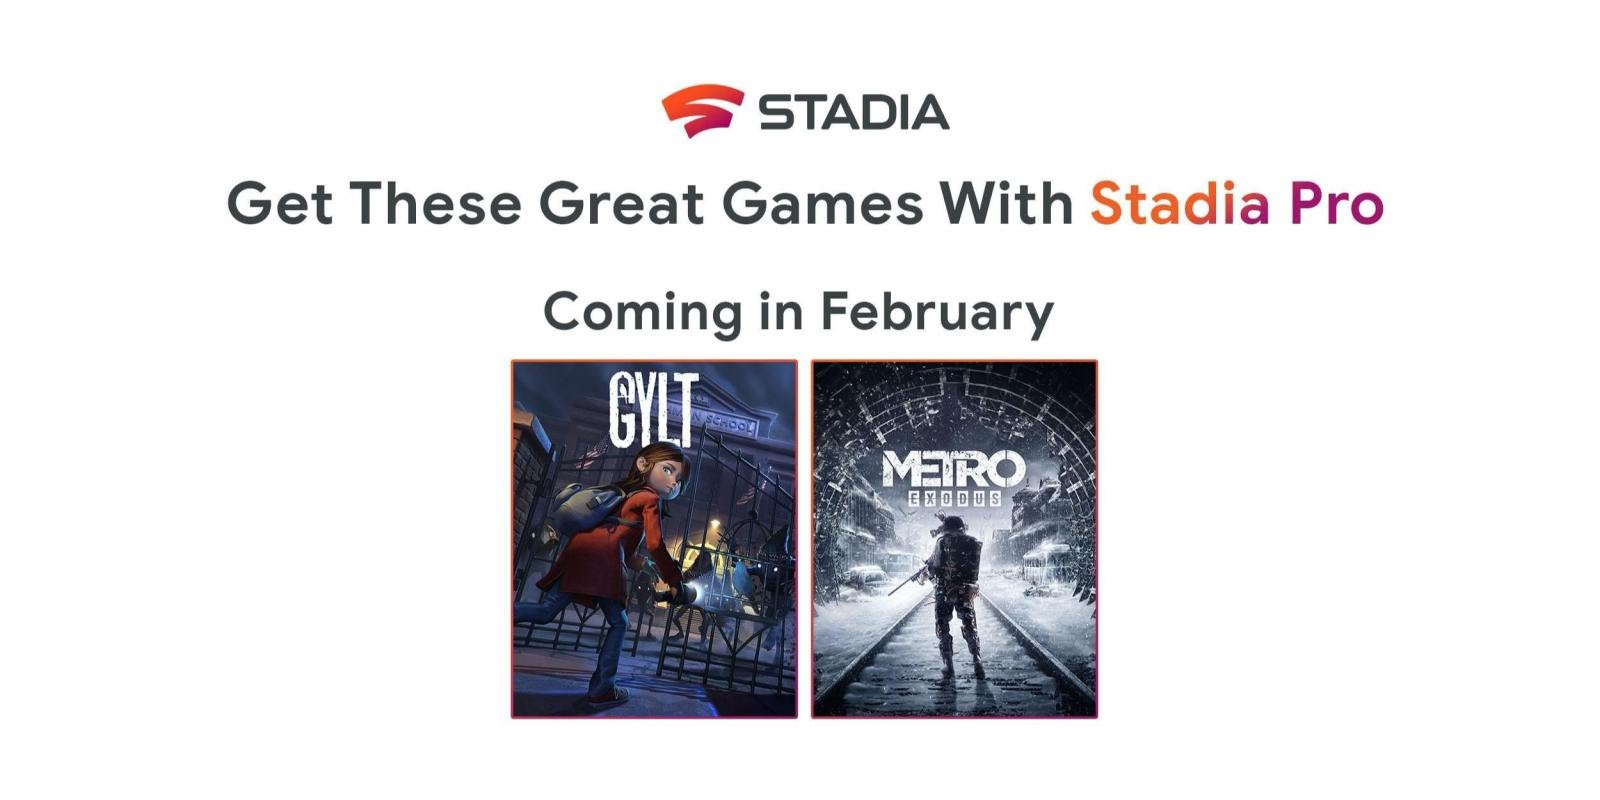 https://9to5google-com.cdn.ampproject.org/i/s/9to5google.com/wp-content/uploads/sites/4/2020/01/stadia-pro-february-2020-games-cover.jpg?resize=1600,800